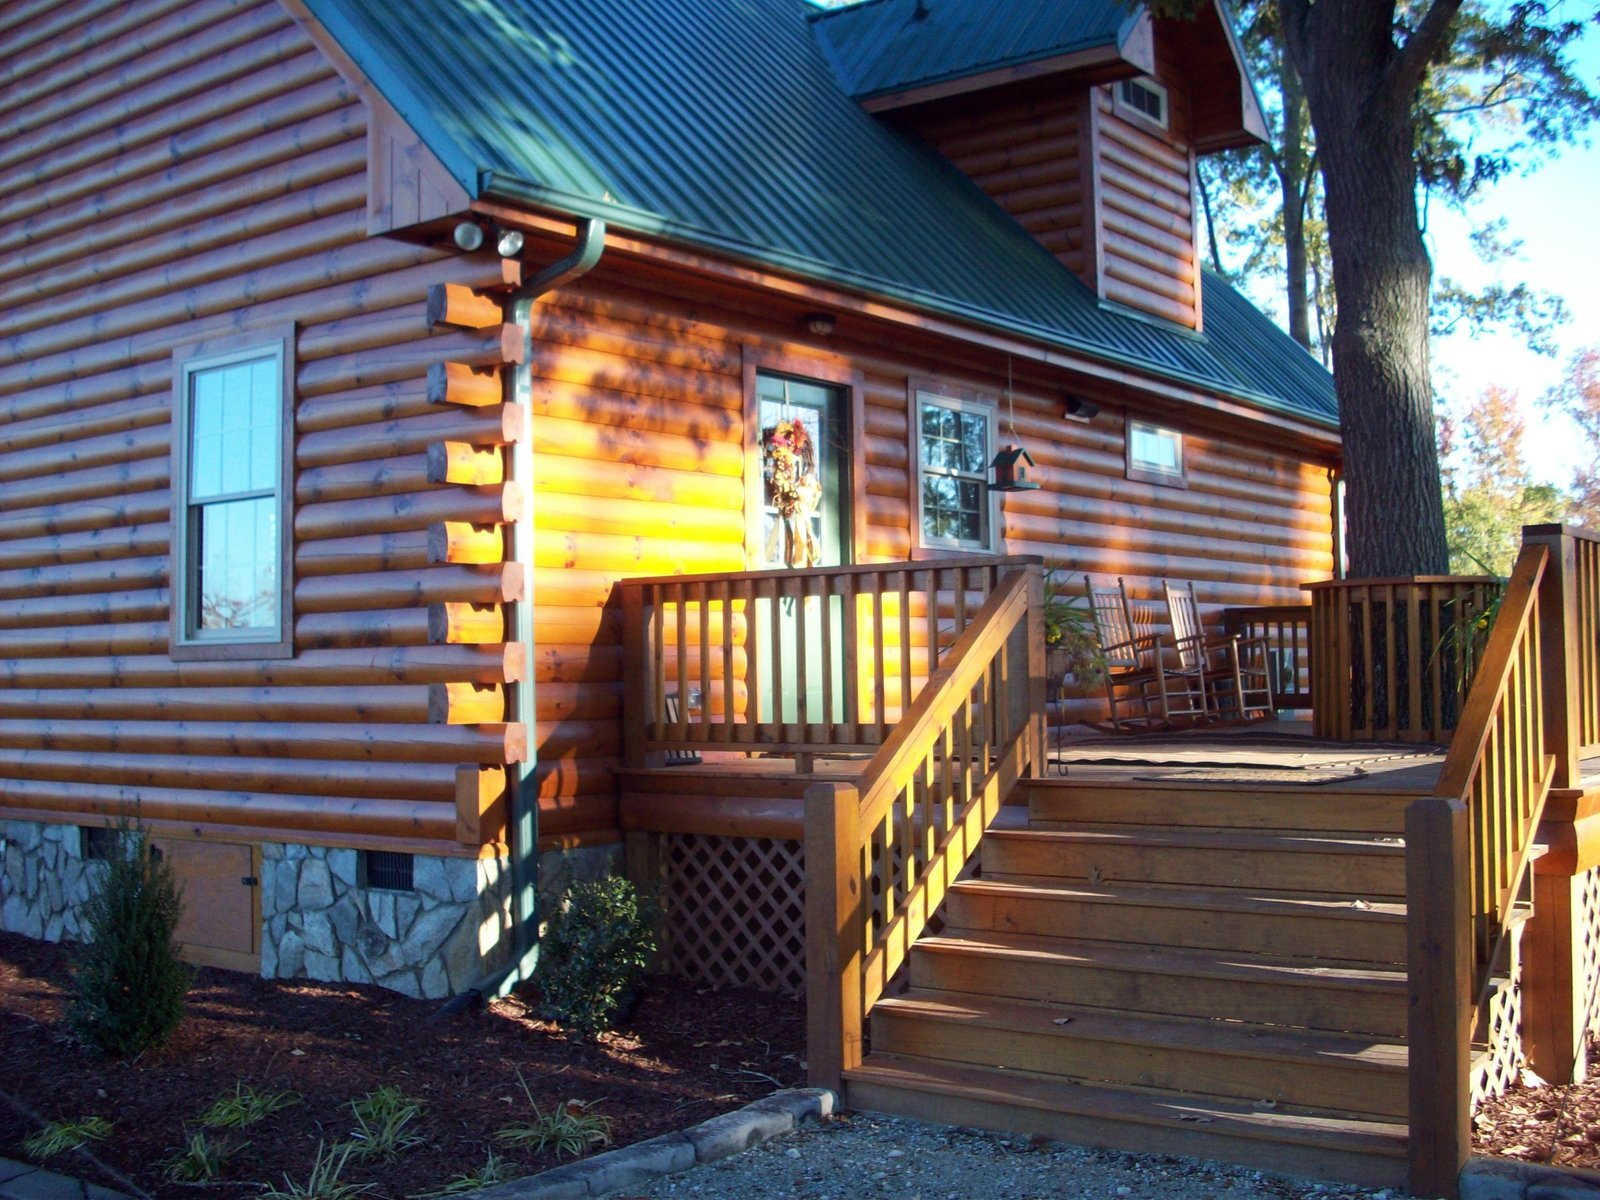 """Complete with over 1600 heated square feet, this log home gives you the """"country living"""" feel with a very large living space and wide open floor plan."""